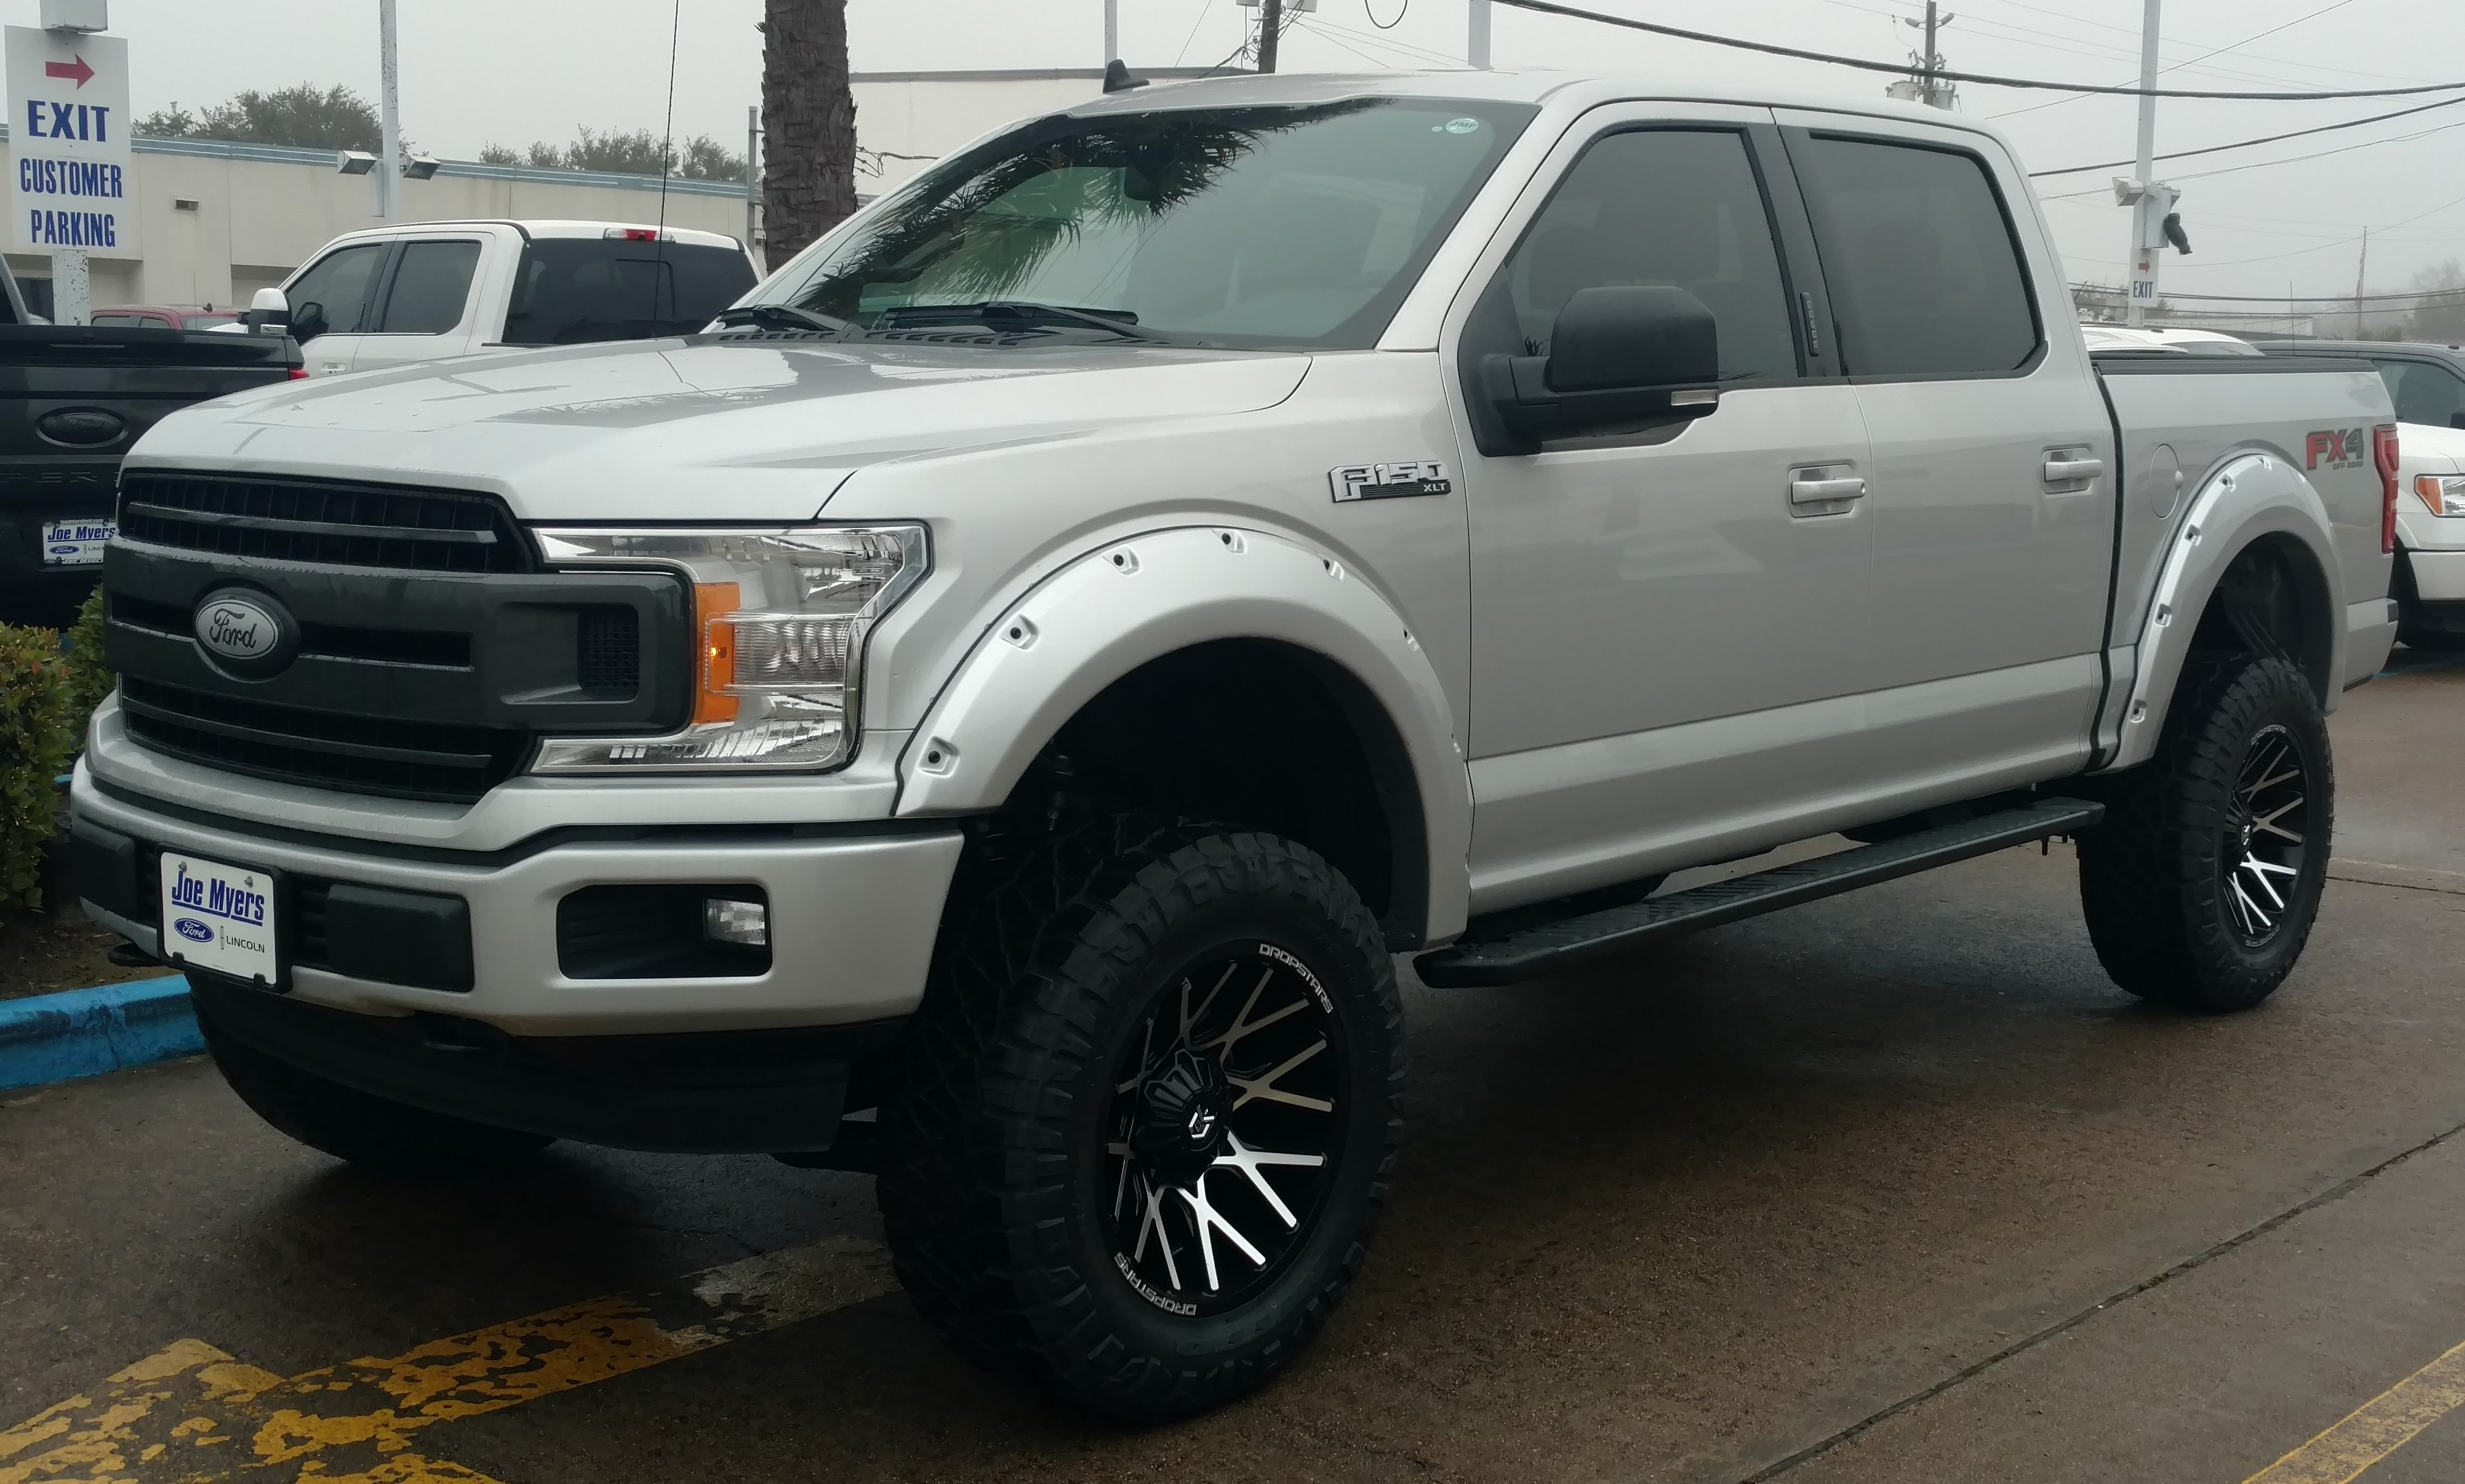 Lifted F150 For Sale >> New 2019 Ford F 150 For Sale In Houston Tx Kkc09502 Houston New Ford For Sale 1ftew1e57kkc09502